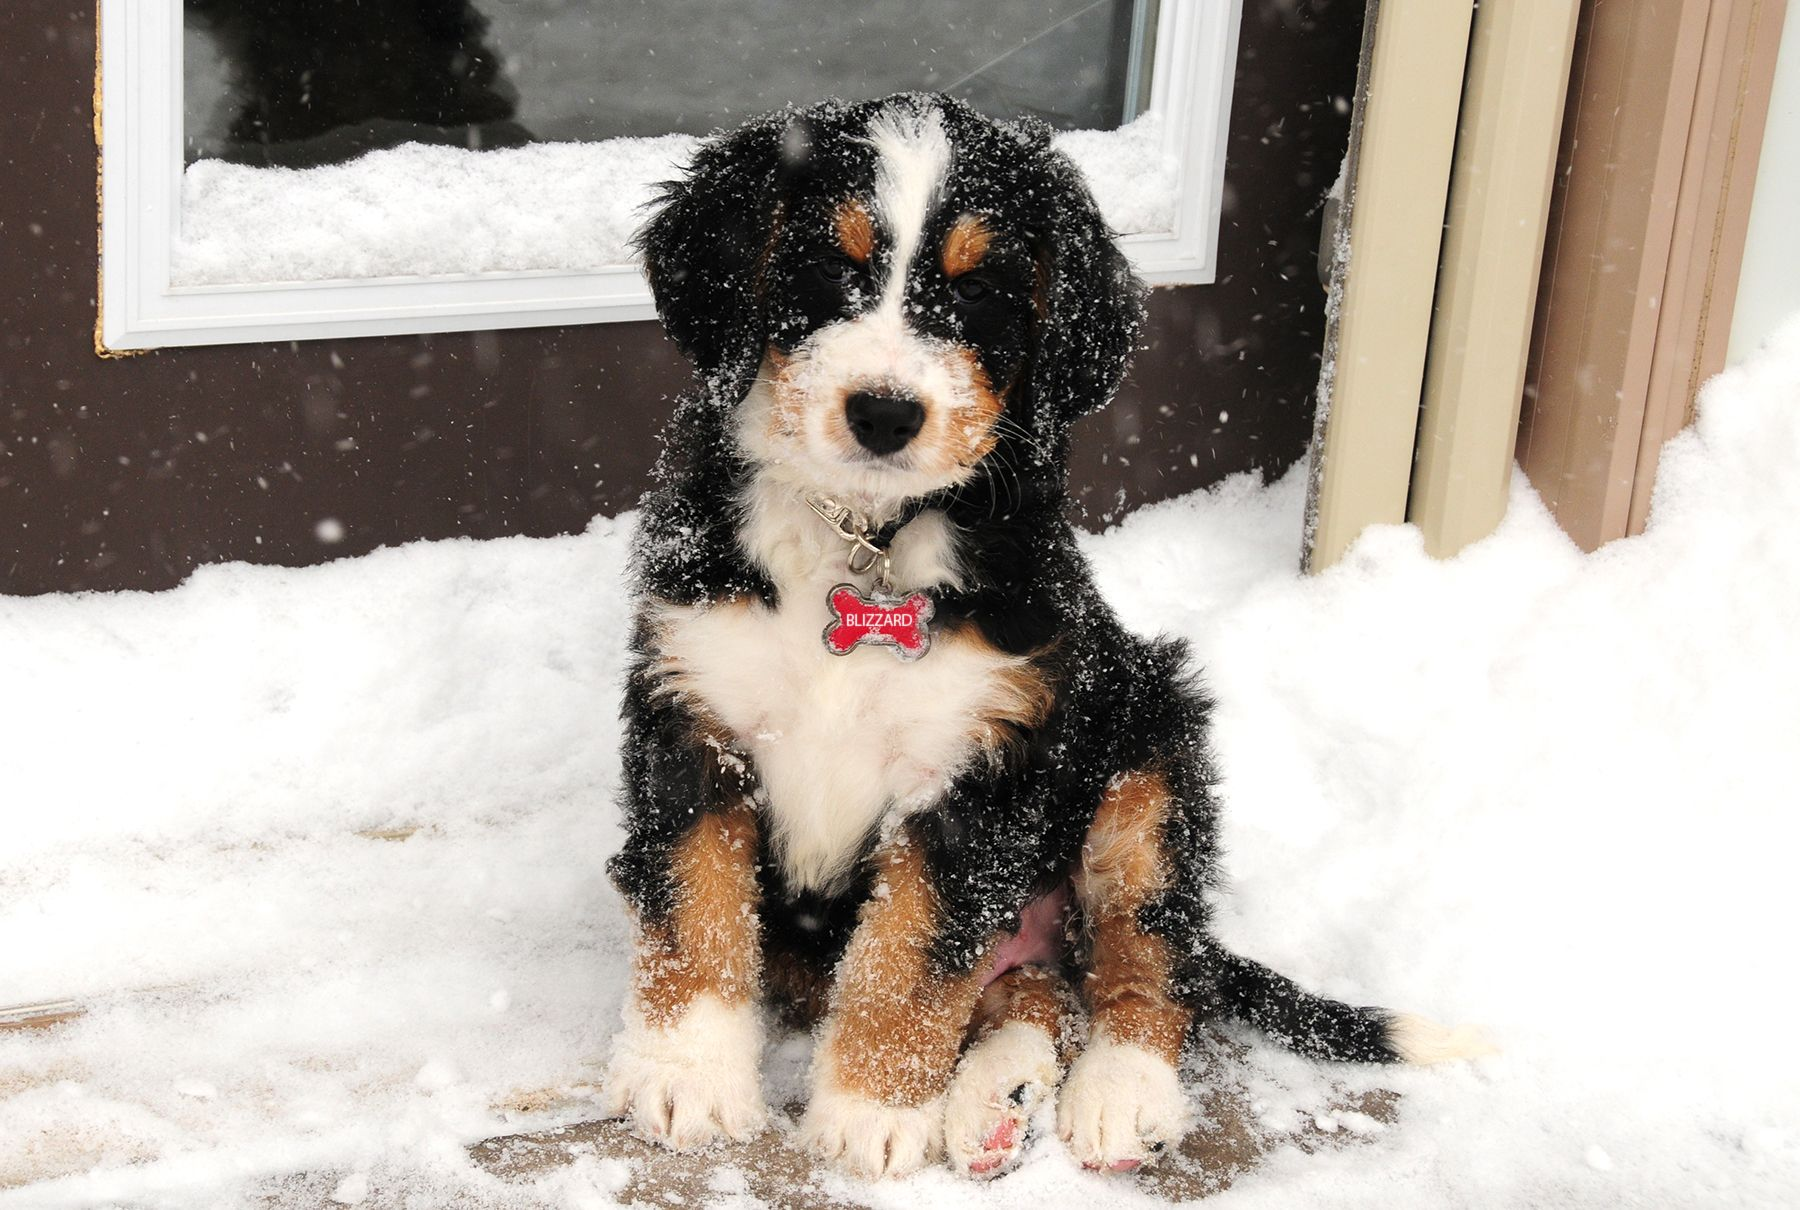 Blizzard Bernedoodle Puppy Cute Dogs Dogs